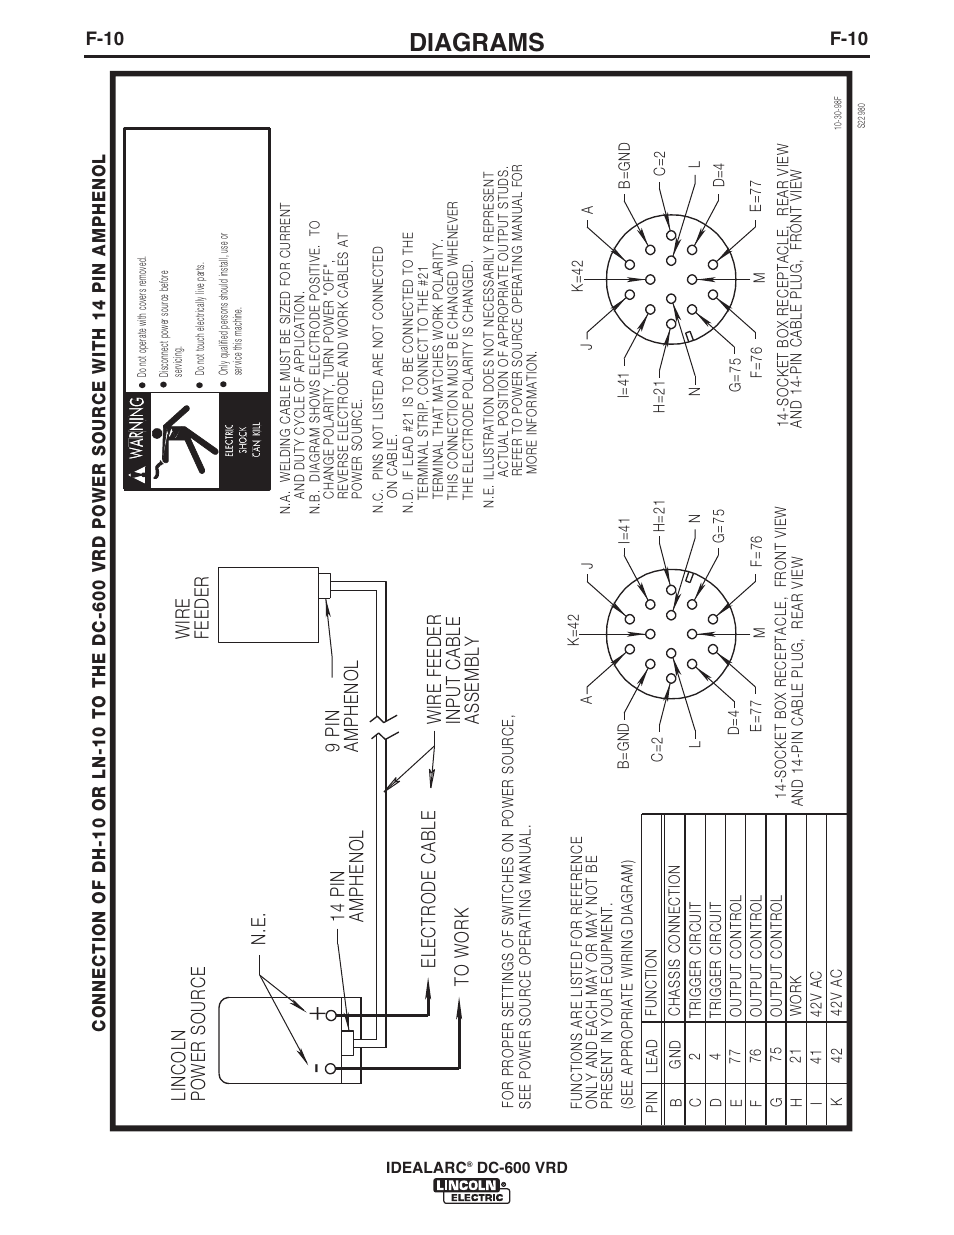 lincoln electric im10018 idealarc dc 600 vrd page50 diagrams, f 10, idealarc lincoln electric im10018 idealarc dc Boat Wiring Diagram for Dummies at readyjetset.co